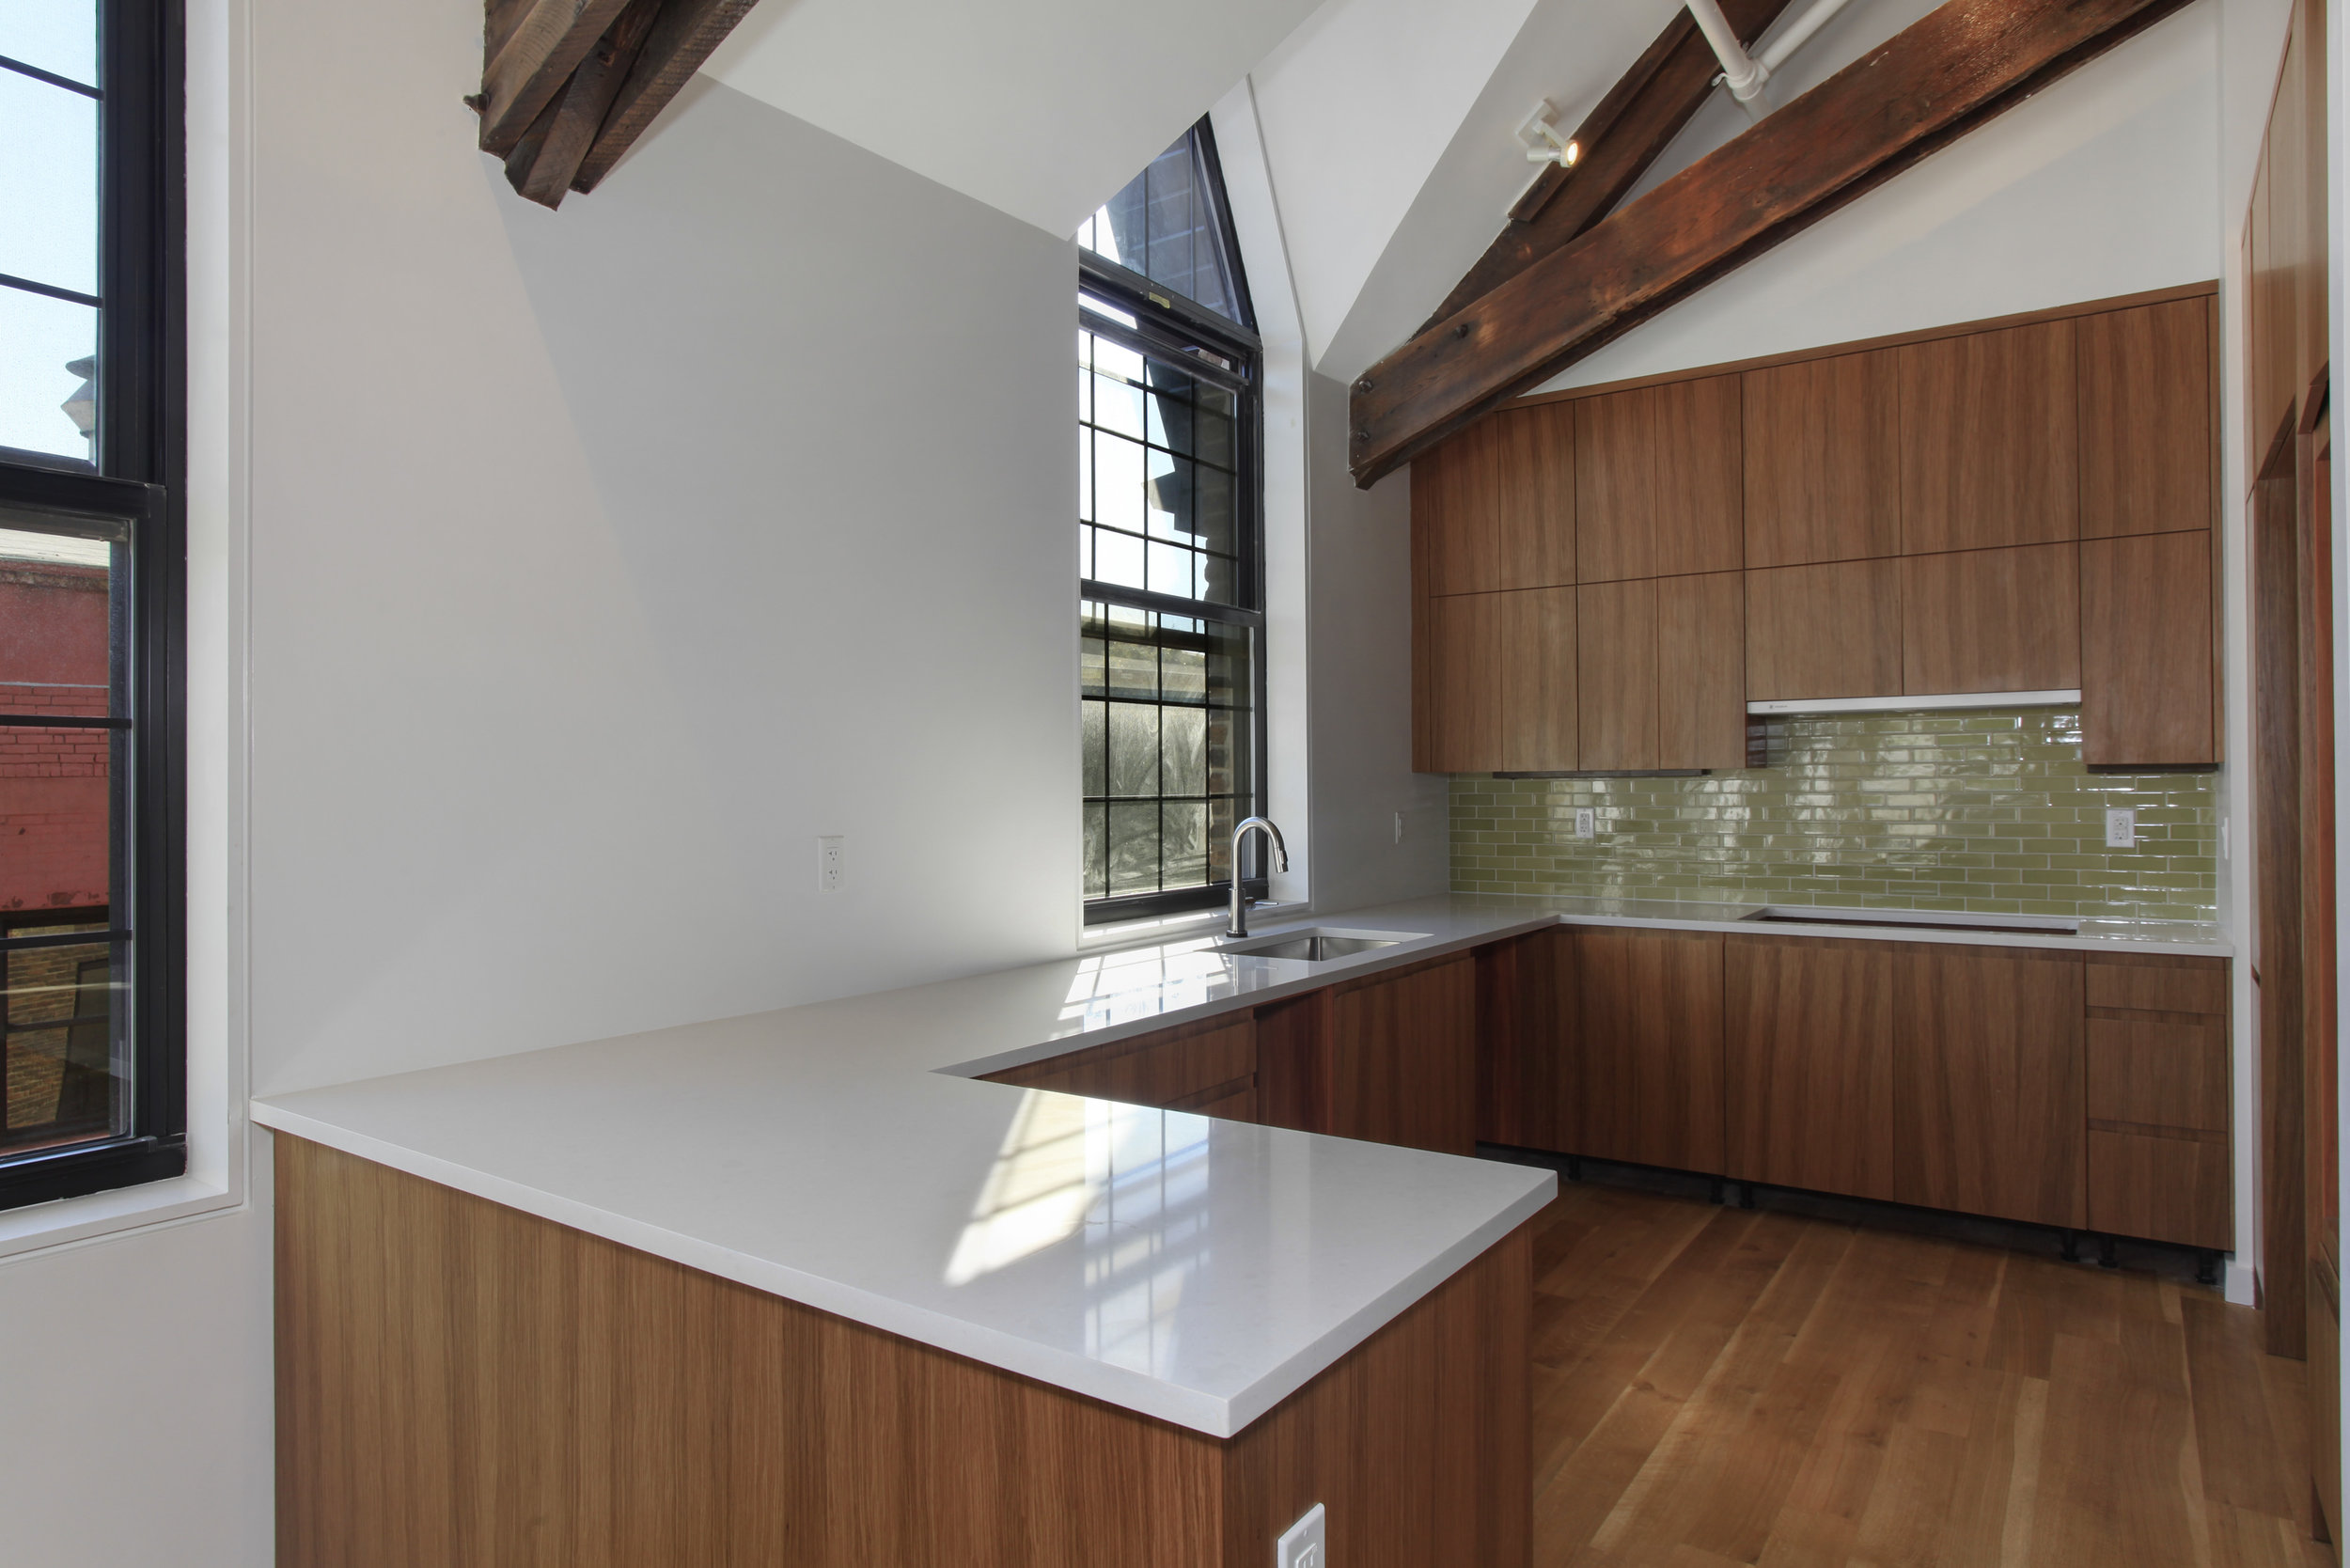 541Leonard-3-top flr kitchen.jpg